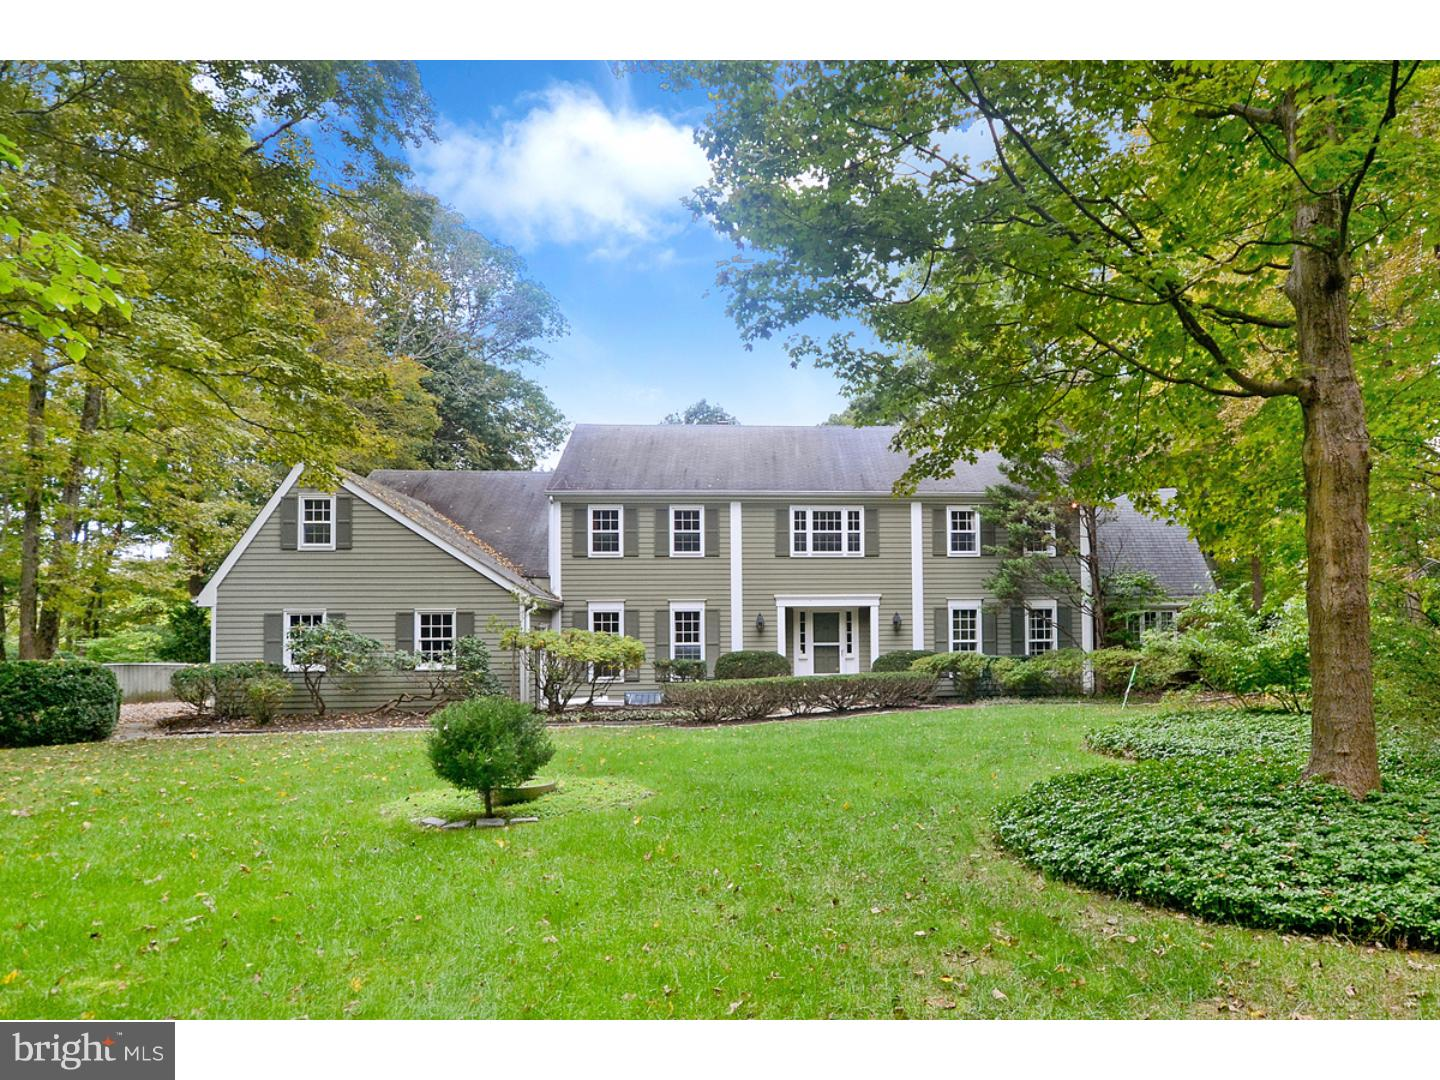 Property for Sale at 237 WENDOVER Drive Princeton, New Jersey 08540 United States